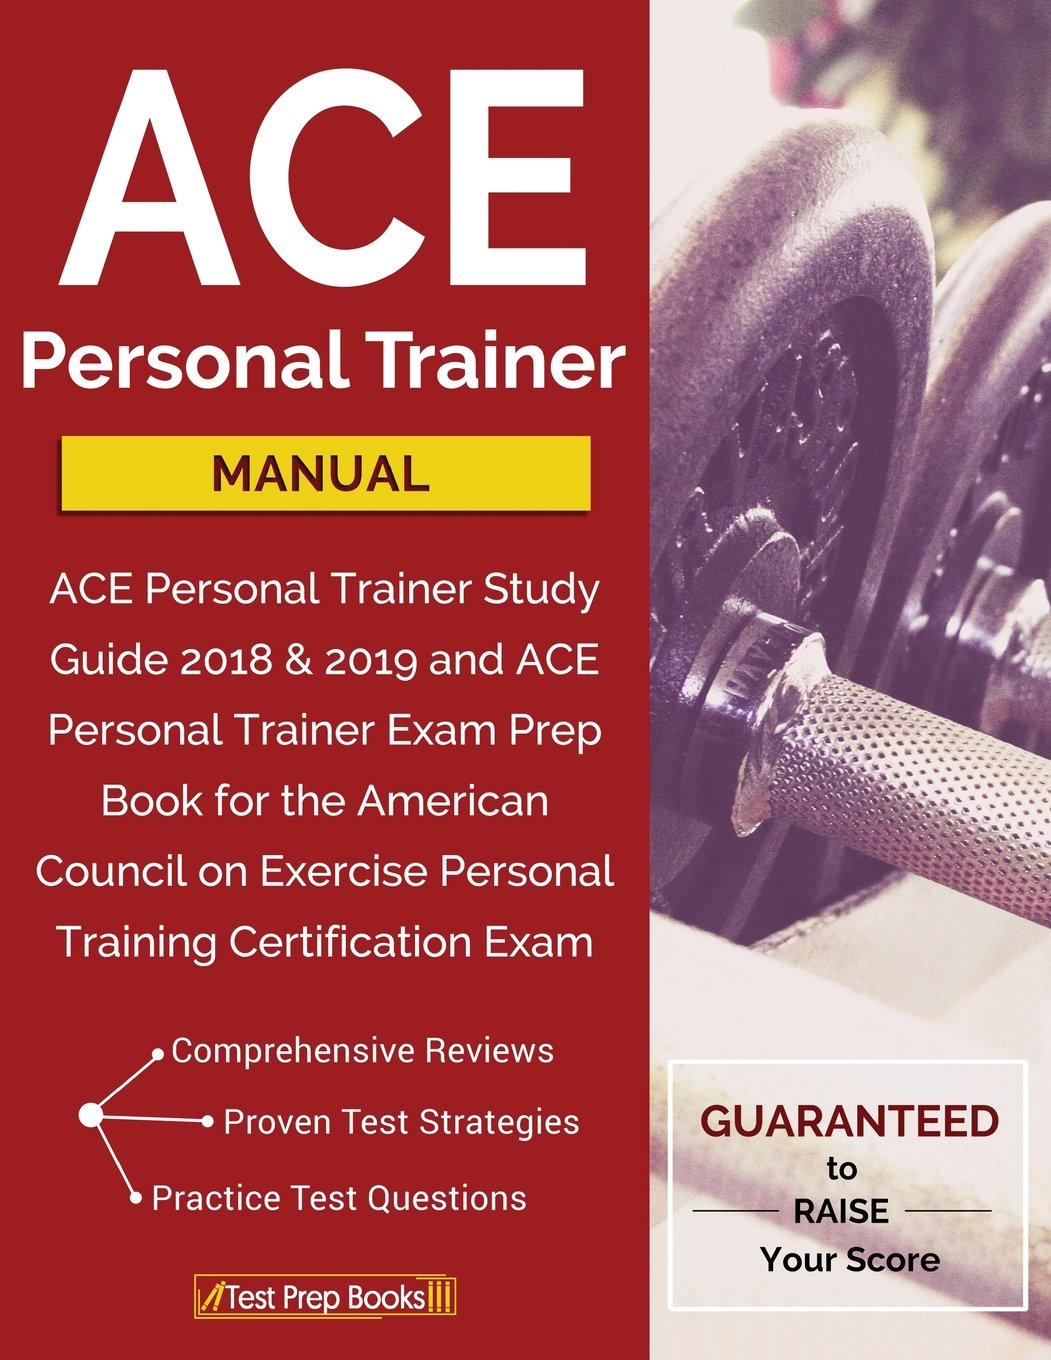 Ace Personal Trainer Manual Ace Personal Trainer Study Guide 2018